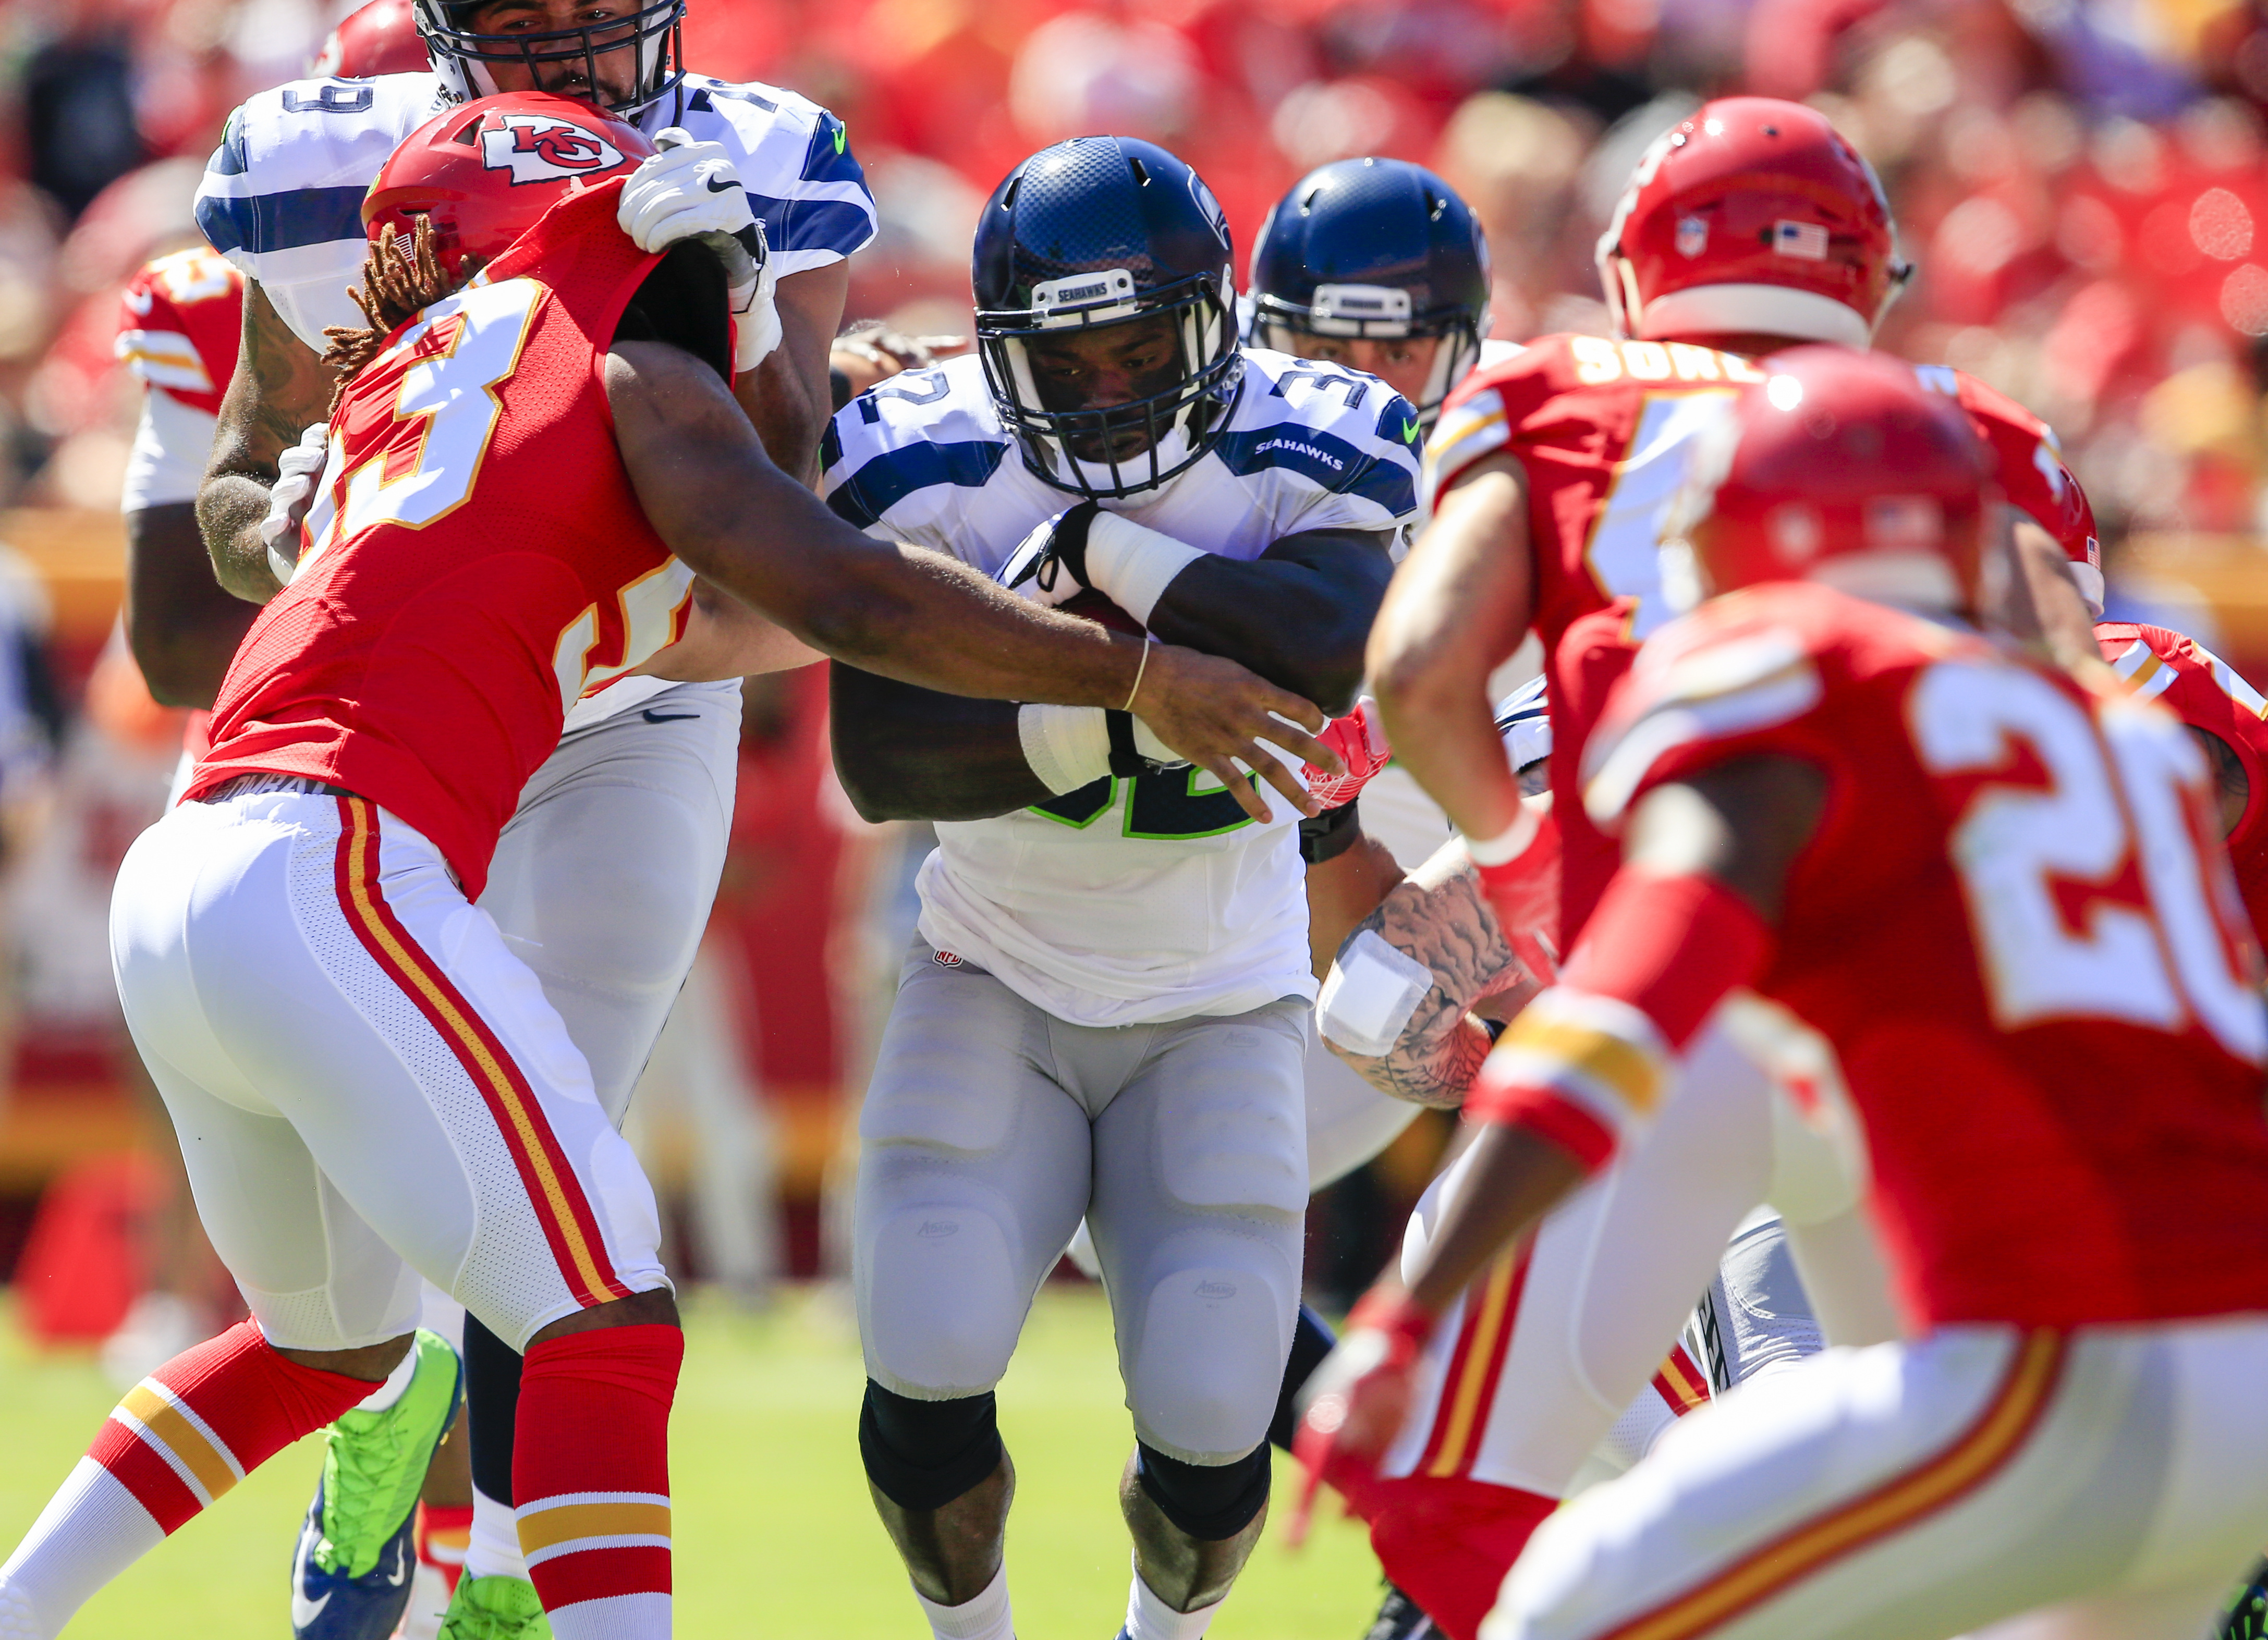 Kansas City Chiefs linebacker Ramik Wilson (53) tries to tackle Seattle Seahawks running back Christine Michael (32) during the first half of an NFL preseason football game in Kansas City, Mo., Saturday, Aug. 13, 2016. (AP Photo/Orlin Wagner)